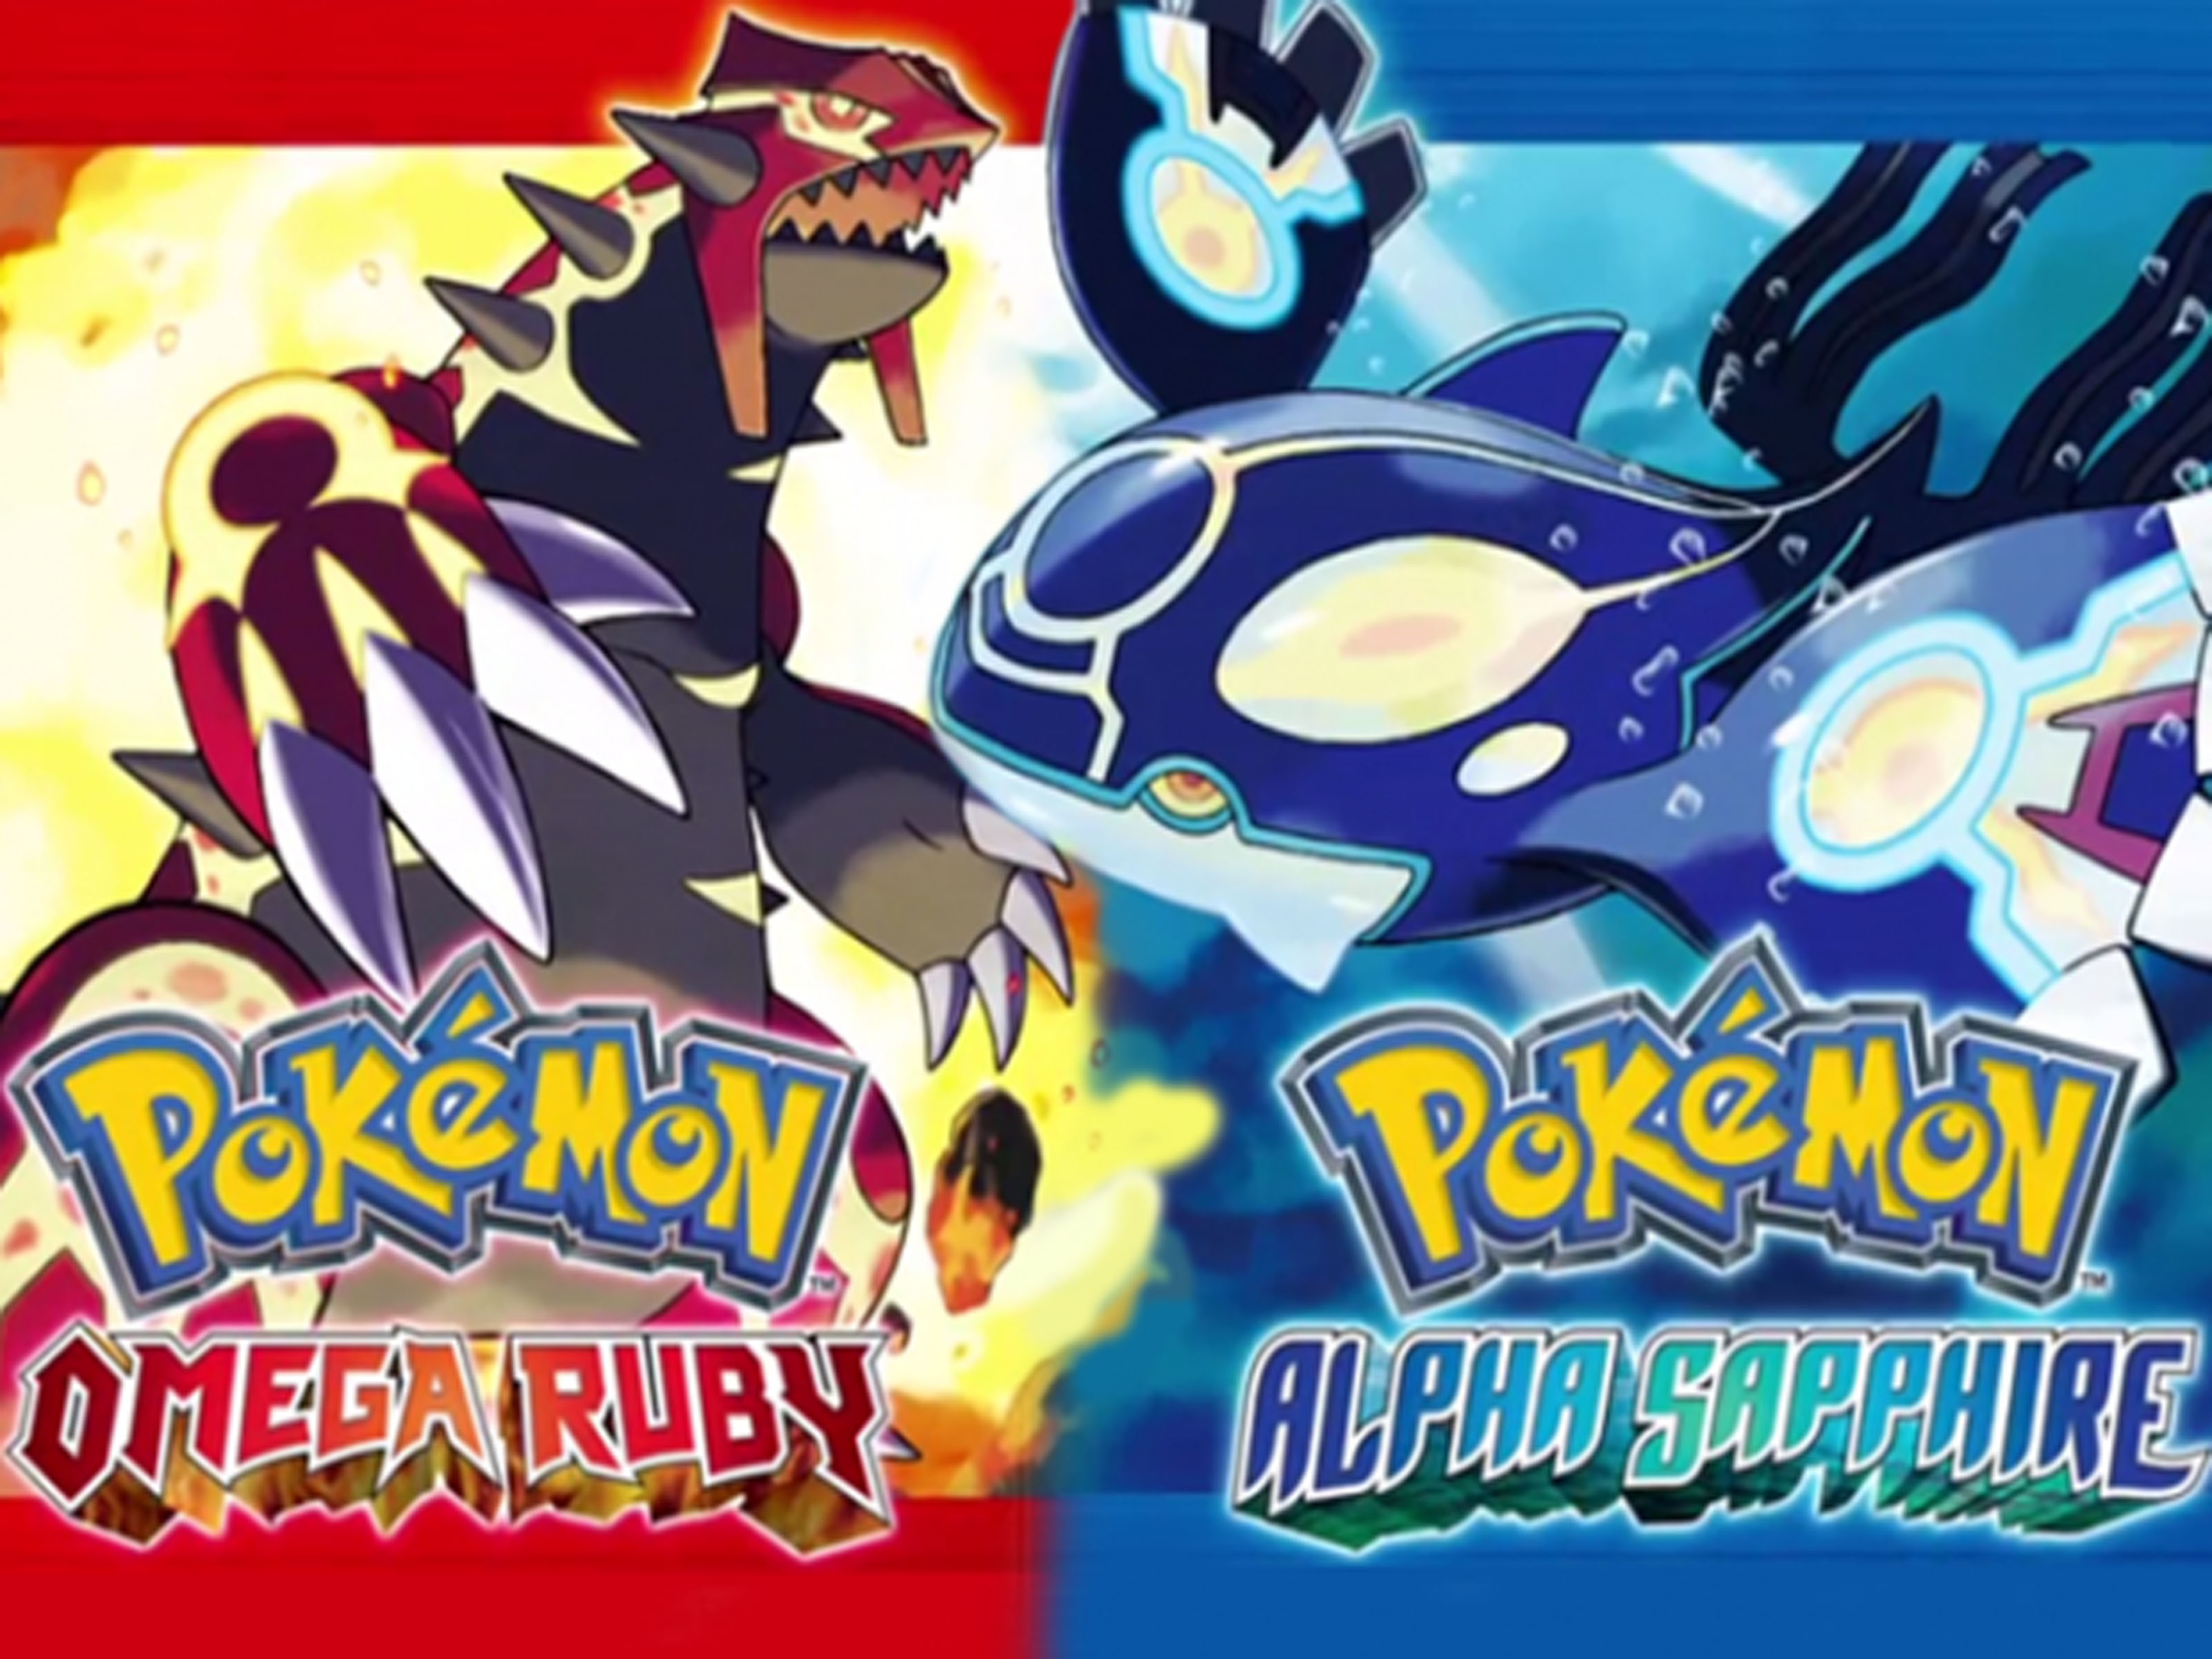 Most Viewed Pokemon Omega Ruby And Alpha Sapphire Wallpapers 4k